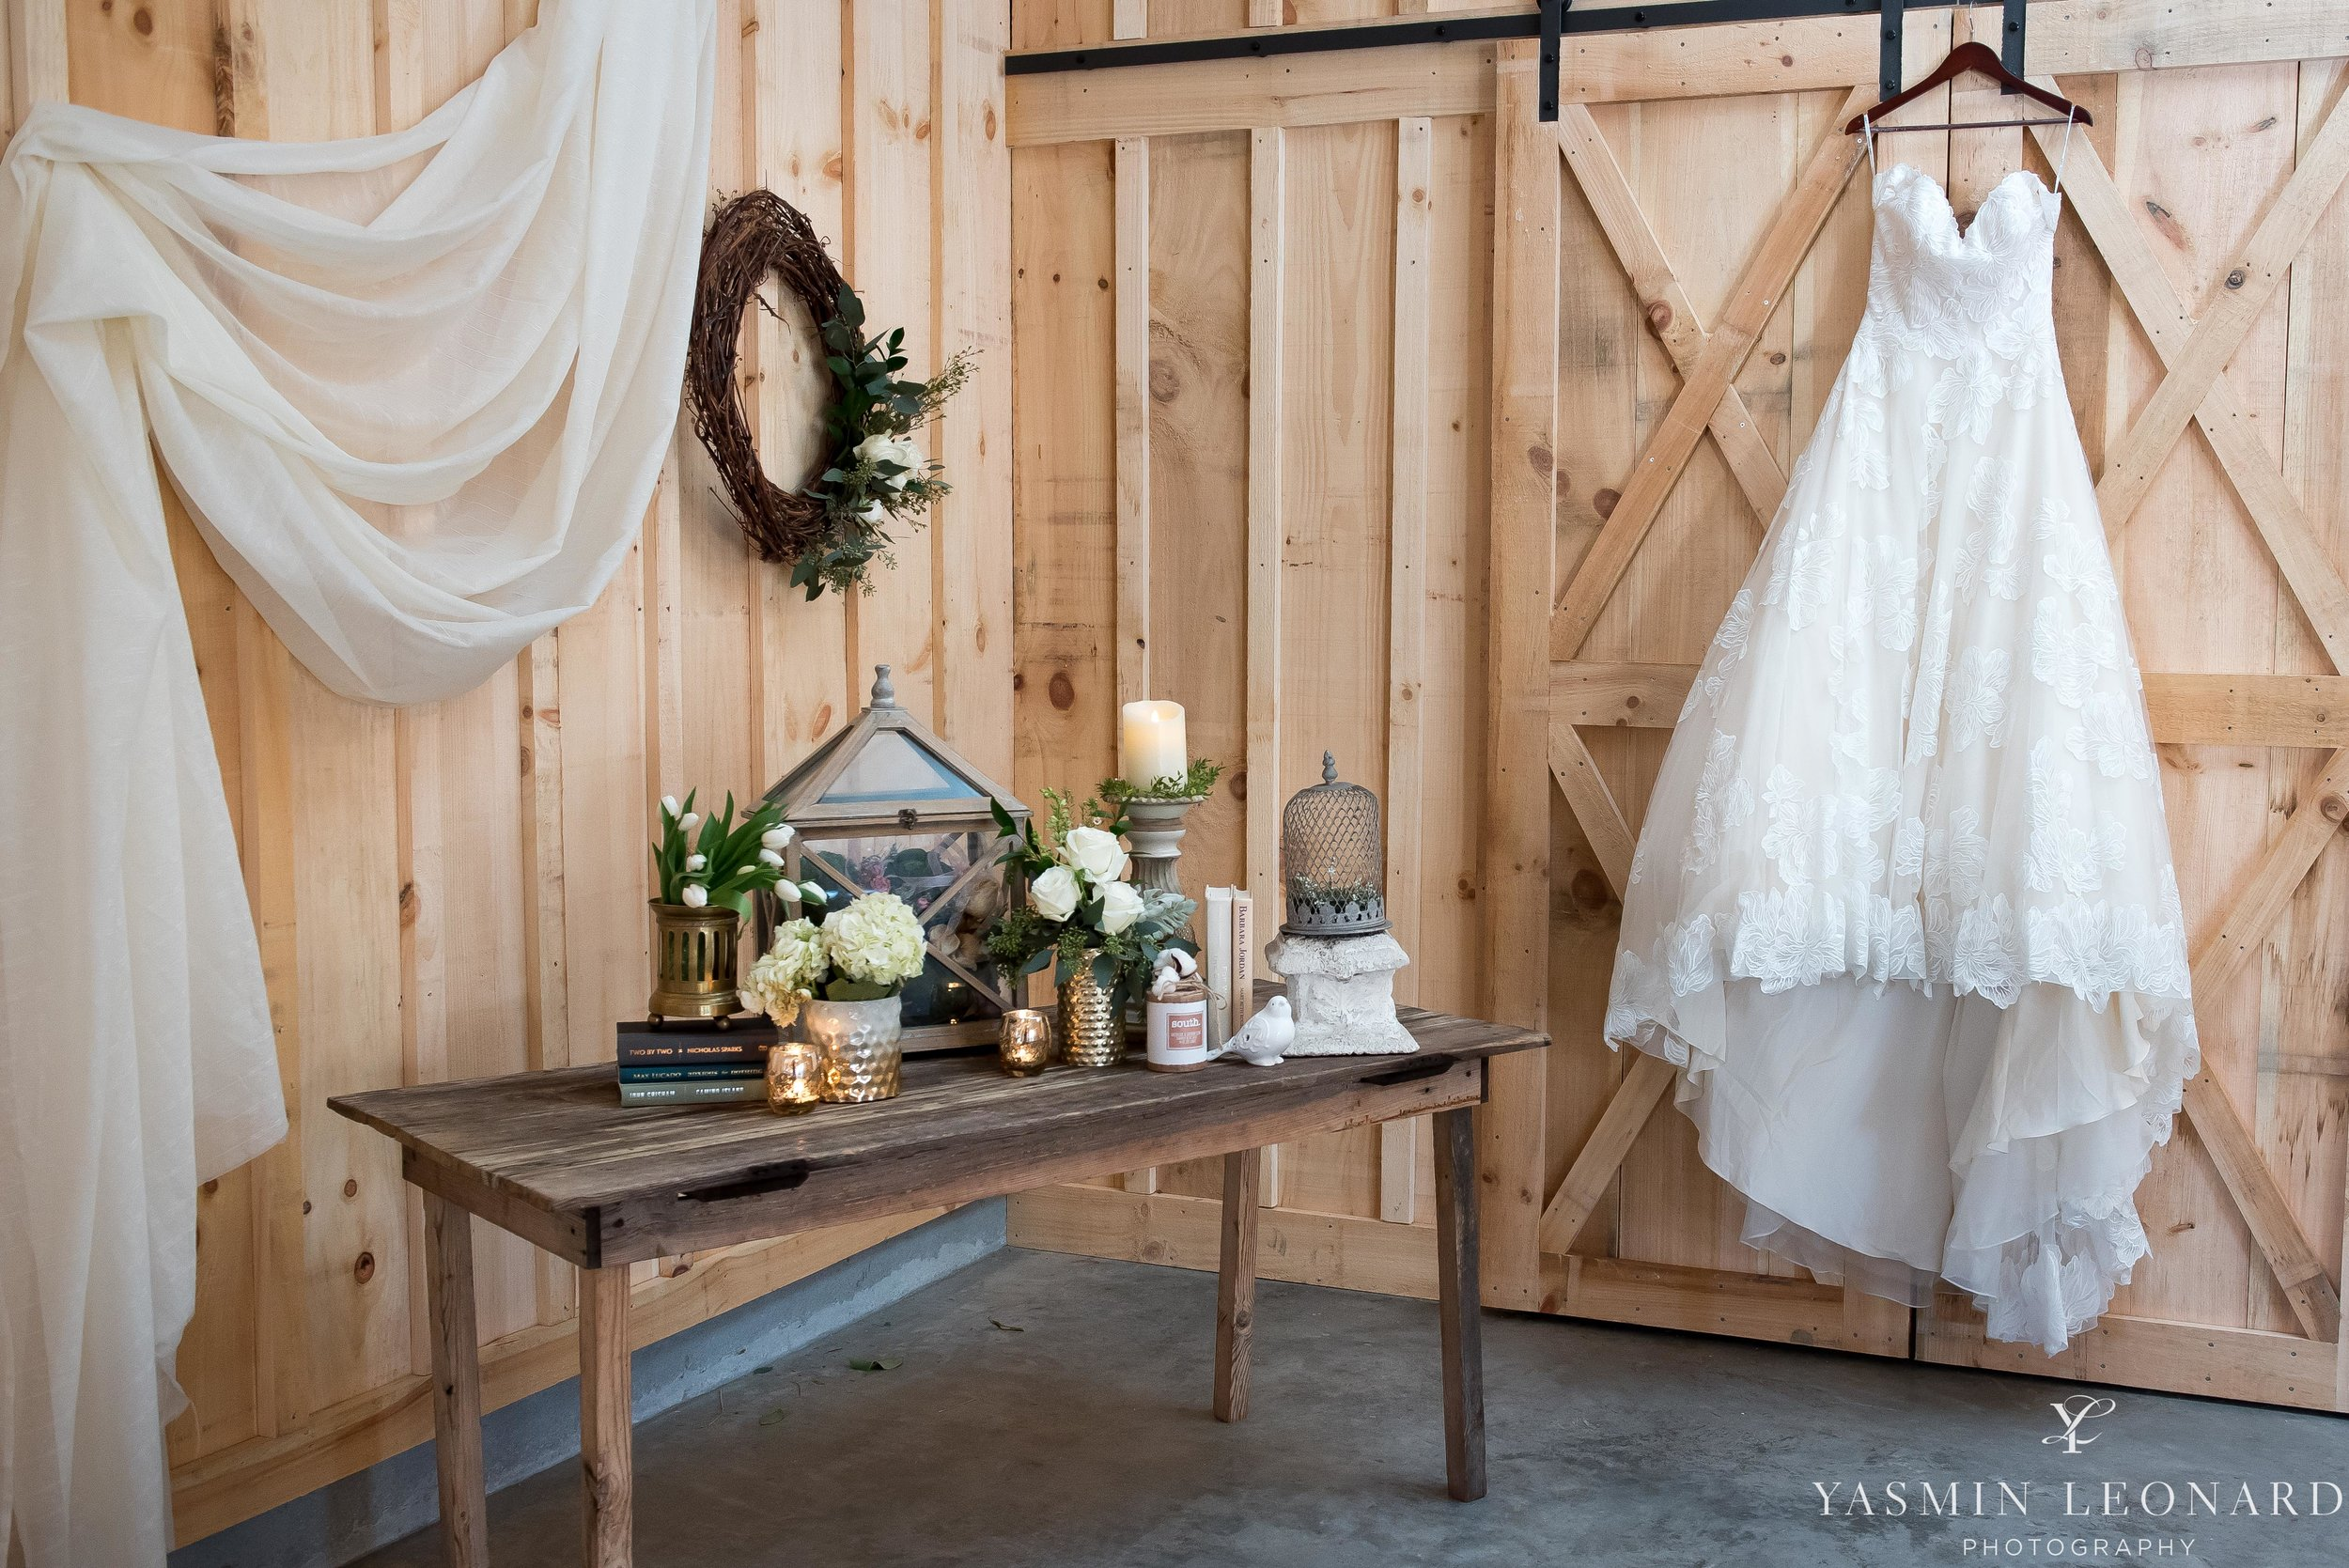 Old Homeplace Vineyard - Grits and Glitter - Dashing Dames Bridal Boutique - Just Priceless - Yasmin Leonard Photography - High Point Weddings - NC Weddings - NC Wedding Venues - High Point Jewelers - NC Wines - NC Vineyards - Cupcake Cuties-35.jpg